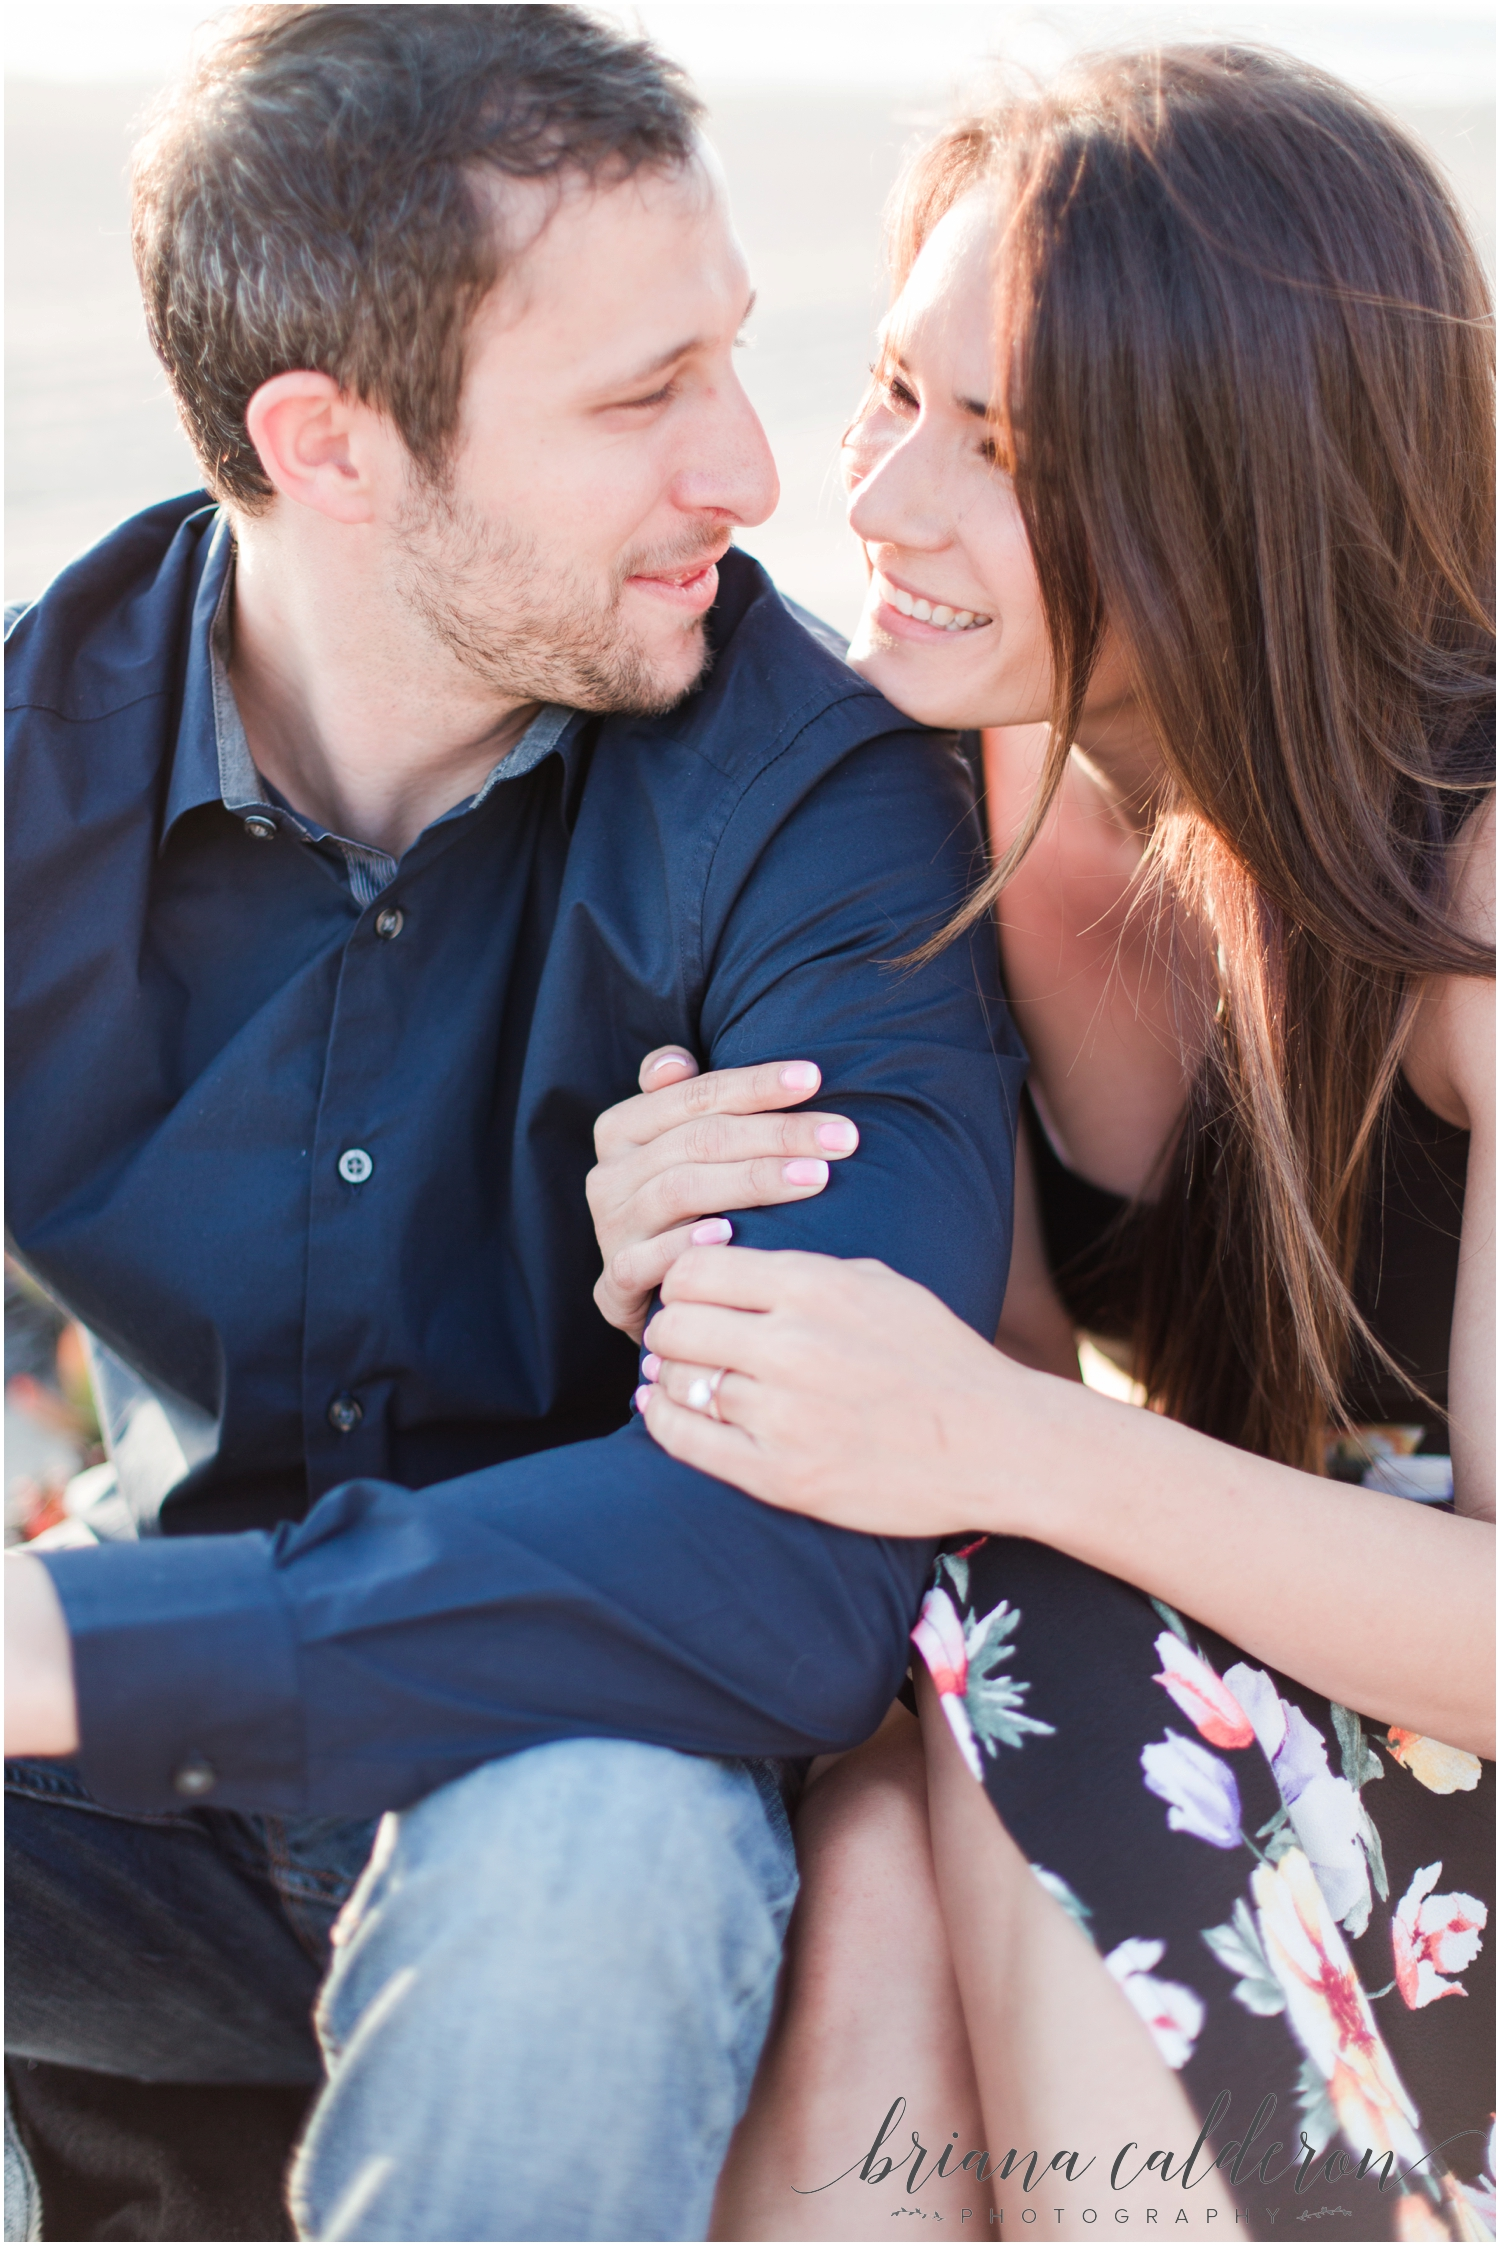 LA Beach Engagement Photos by Briana Calderon Photography_0805.jpg